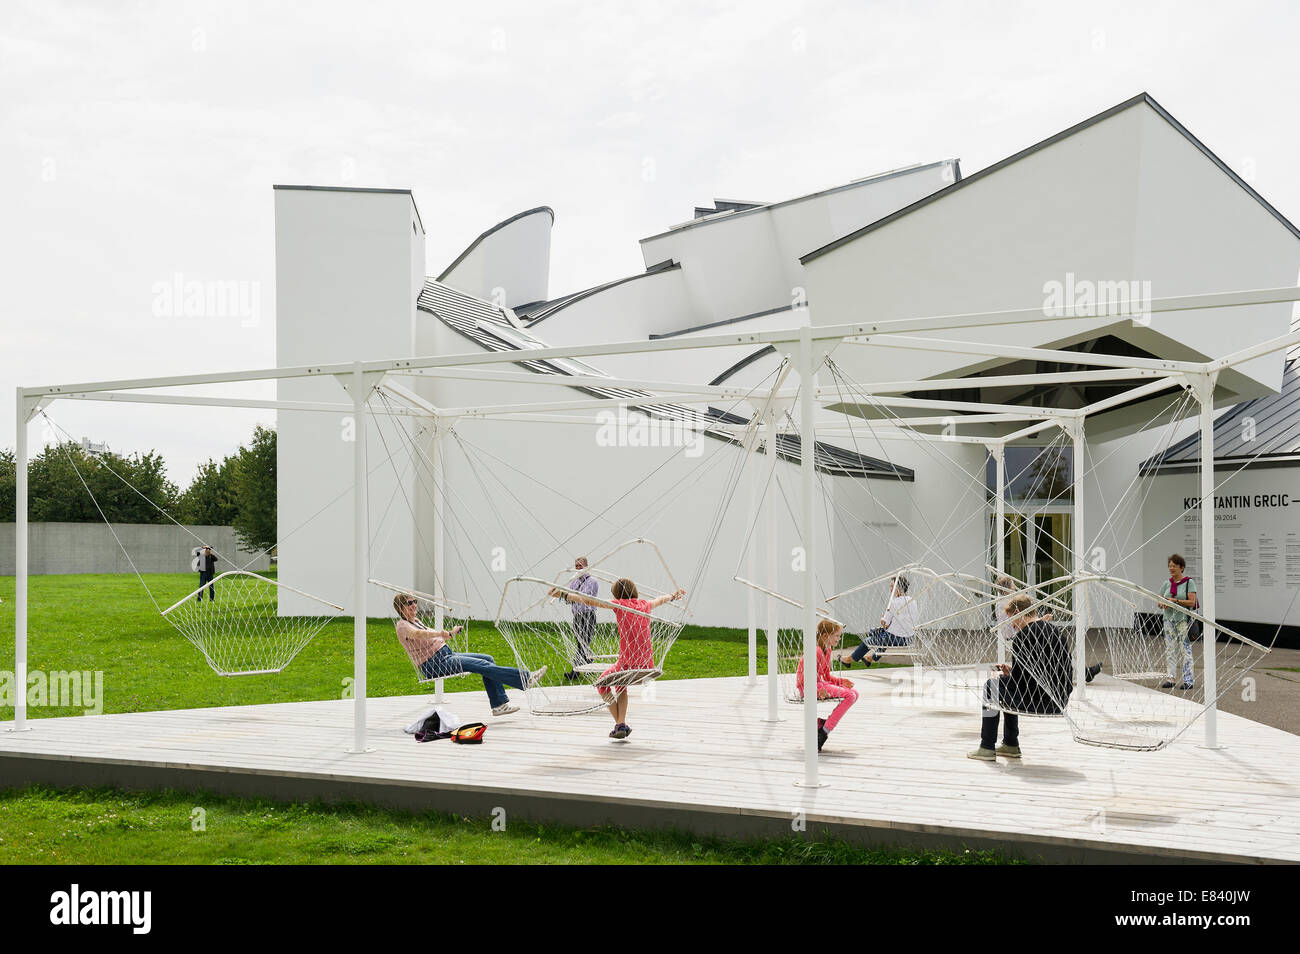 Architect Company vitra design museum,architect frank o. gehry, architecture